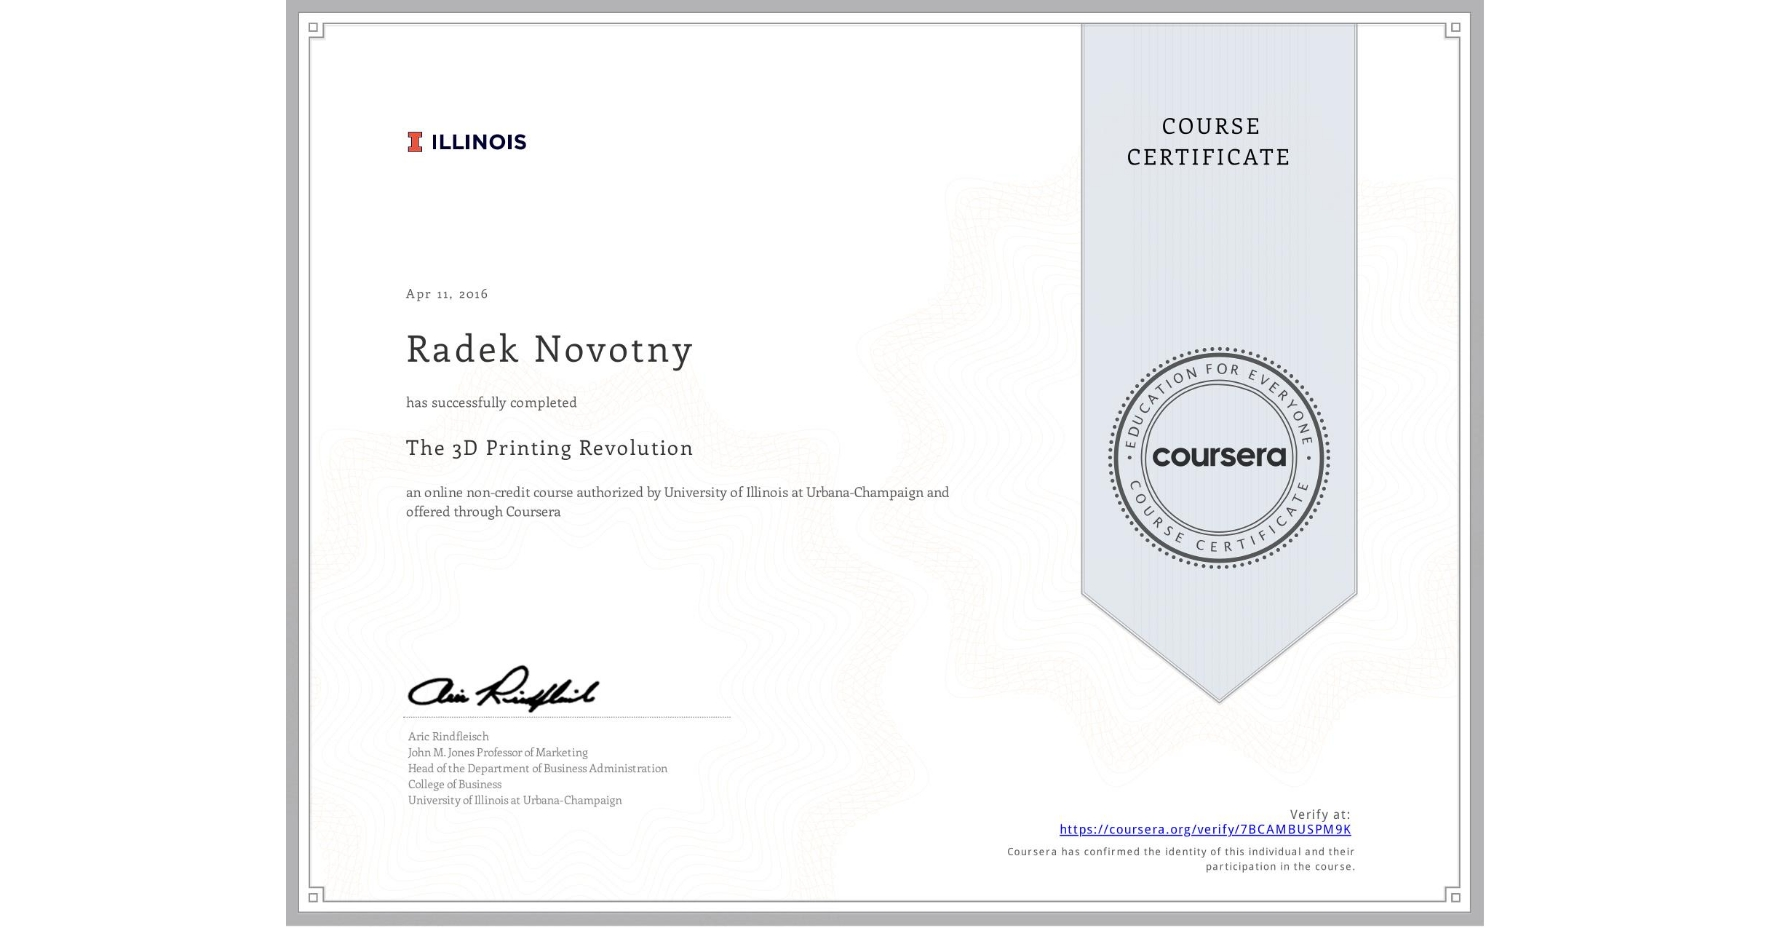 View certificate for Radek Novotny, The 3D Printing Revolution, an online non-credit course authorized by University of Illinois at Urbana-Champaign and offered through Coursera